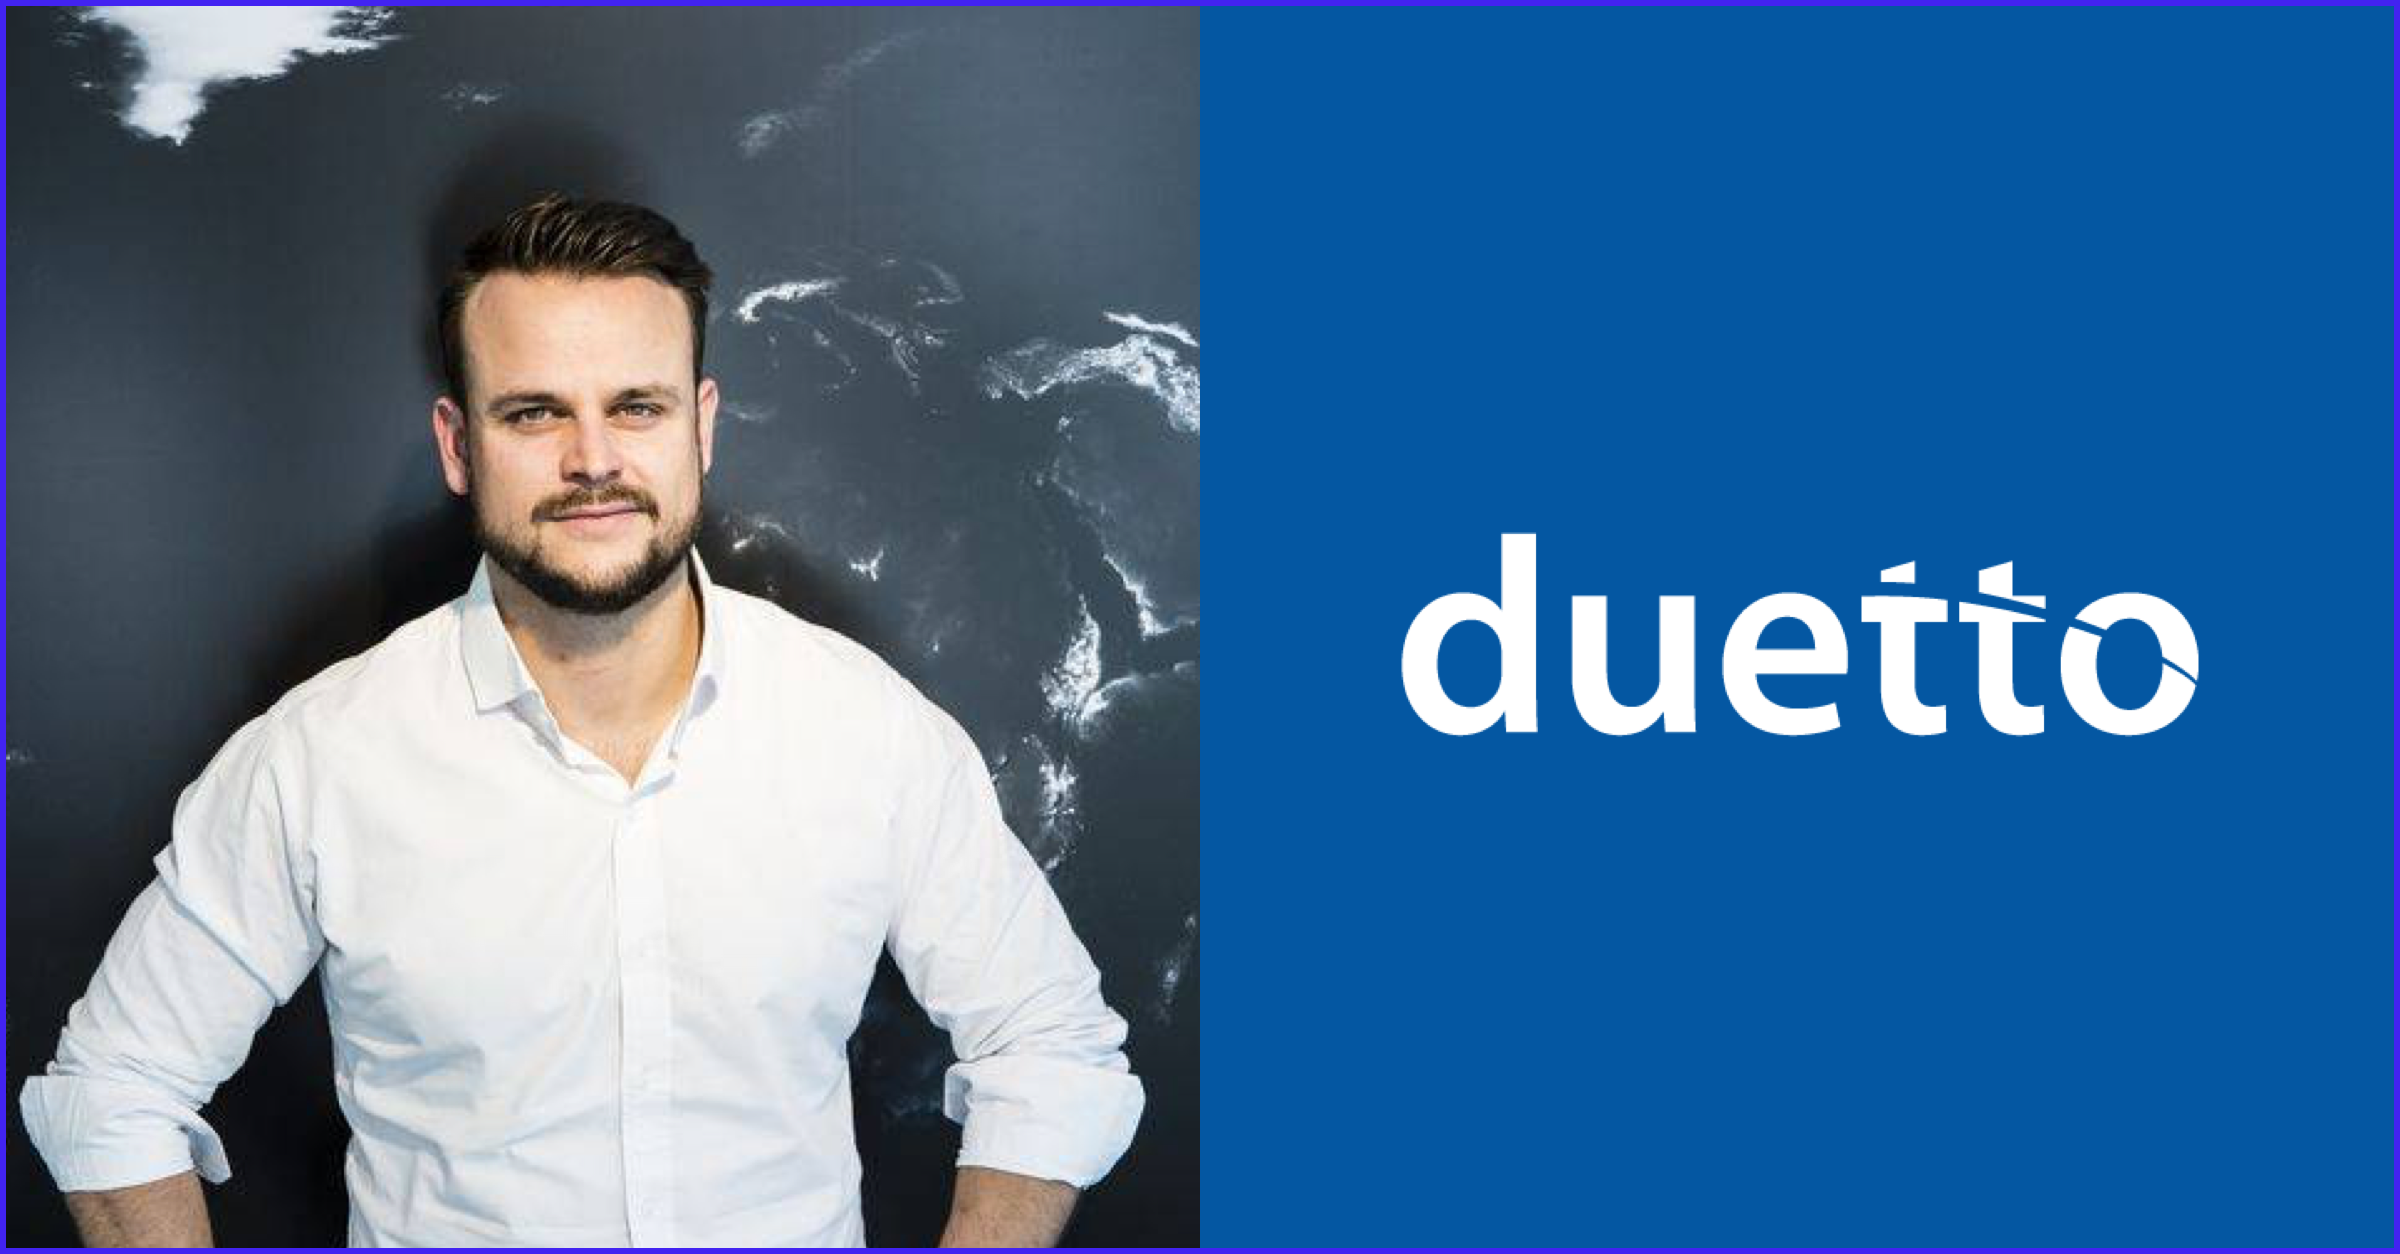 Duetto appoints Michael Schäffner as vice president of sales EMEA